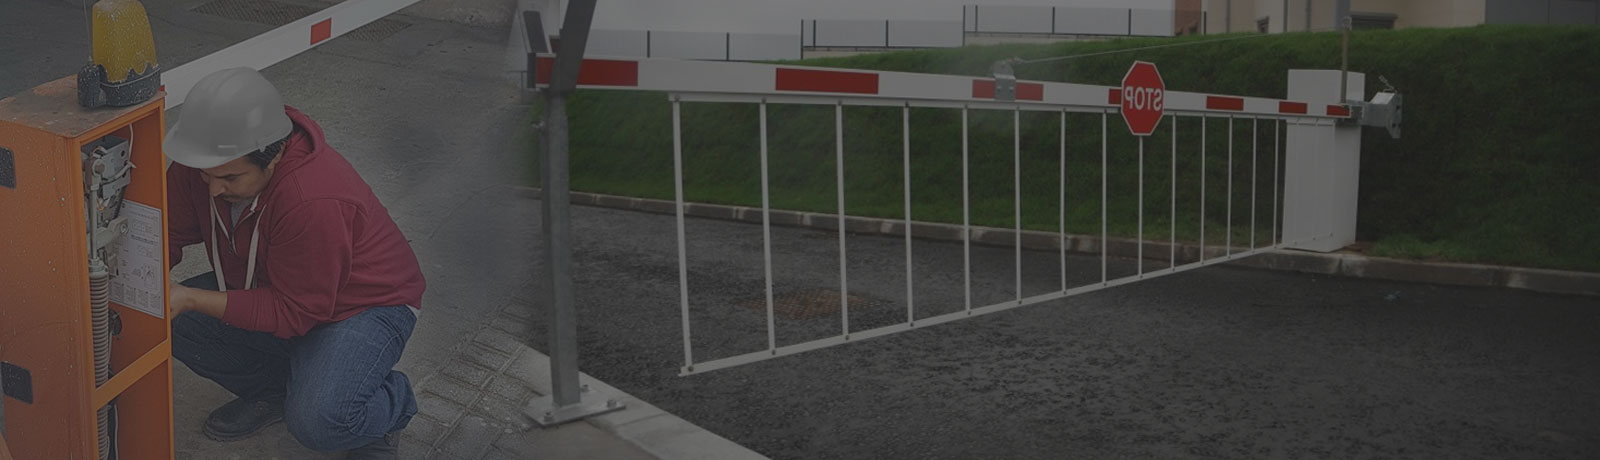 Gate Barriers Installation Services in Dubai